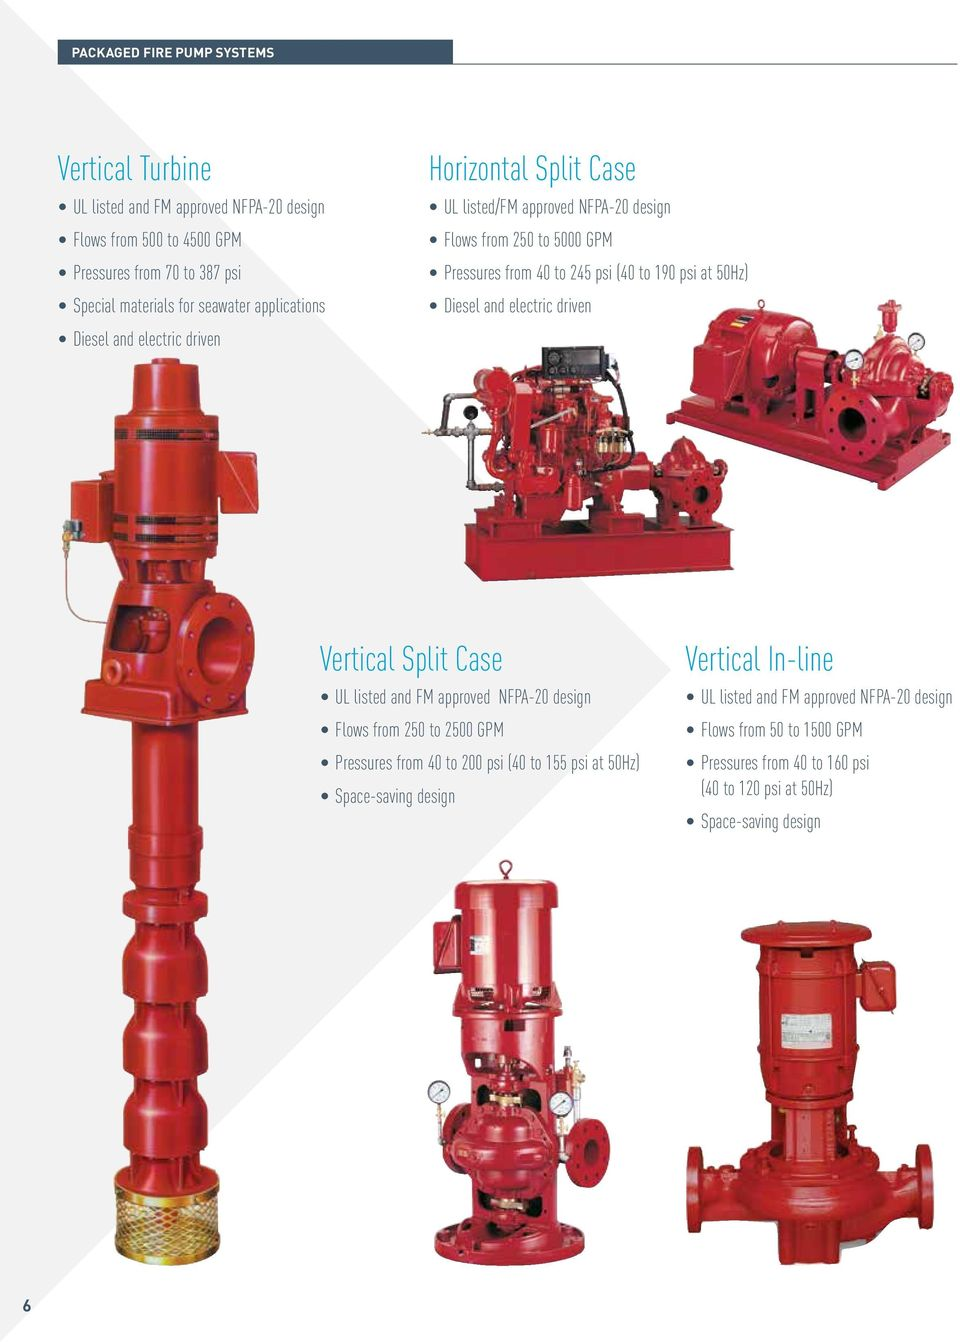 FAIRBANKS NIJHUIS PACKAGED FIRE PUMP SYSTEMS  - PDF